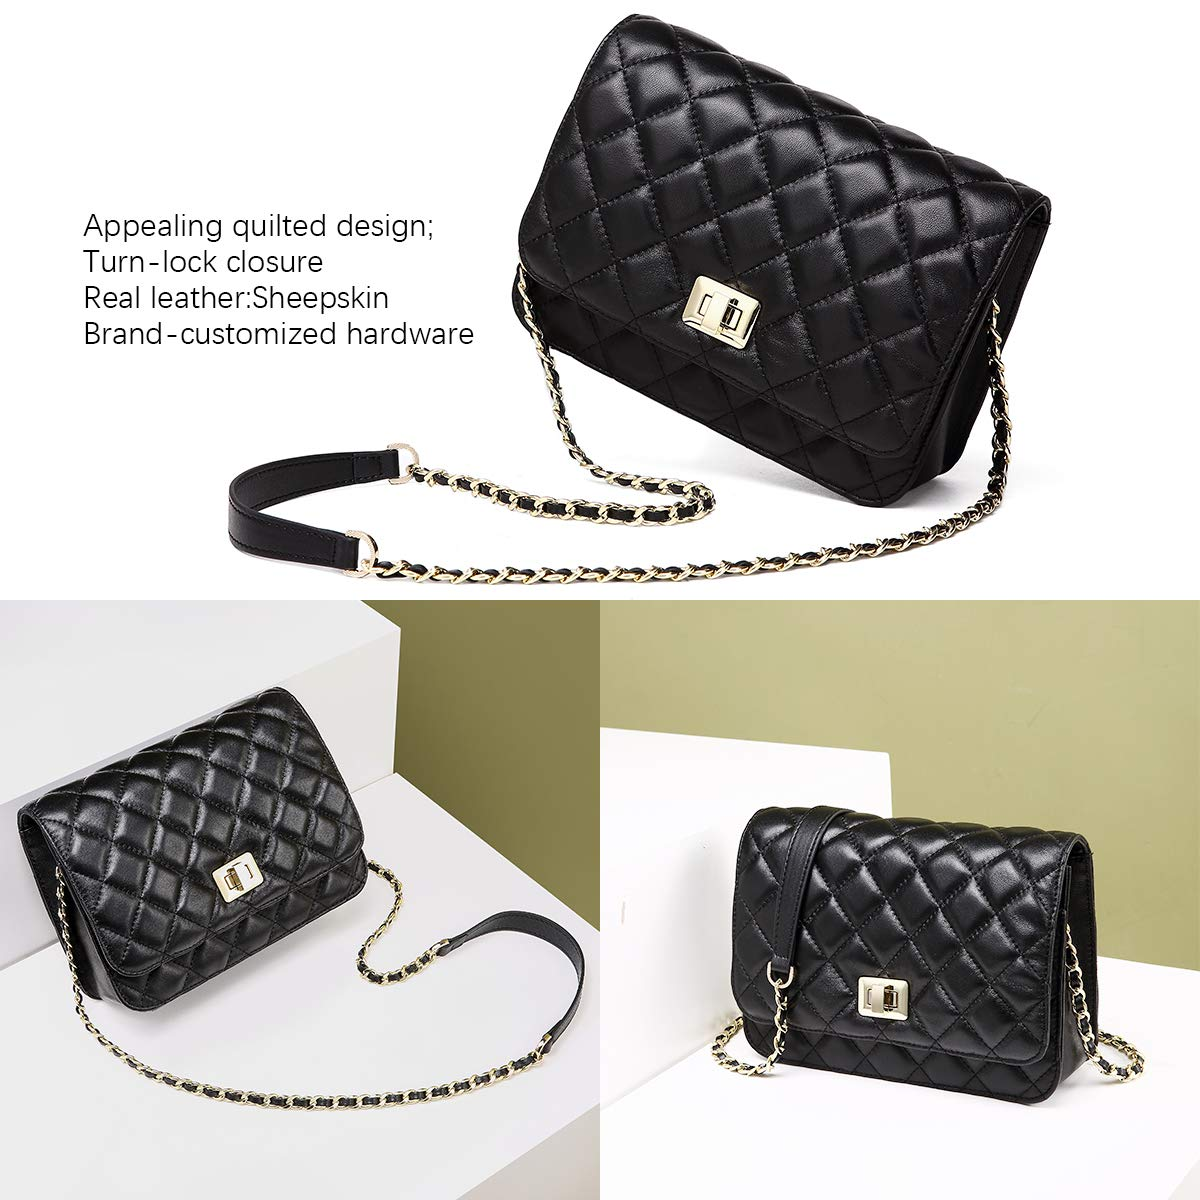 NEVEROUT Women Soft Lamb Leather Classic Quilted Cross-body Shoulder Bag  Clutch Handbag Purse with Chain Strap (NP1991) (Black)  Amazon.co.uk  Shoes    Bags 49e5f5ae26b05